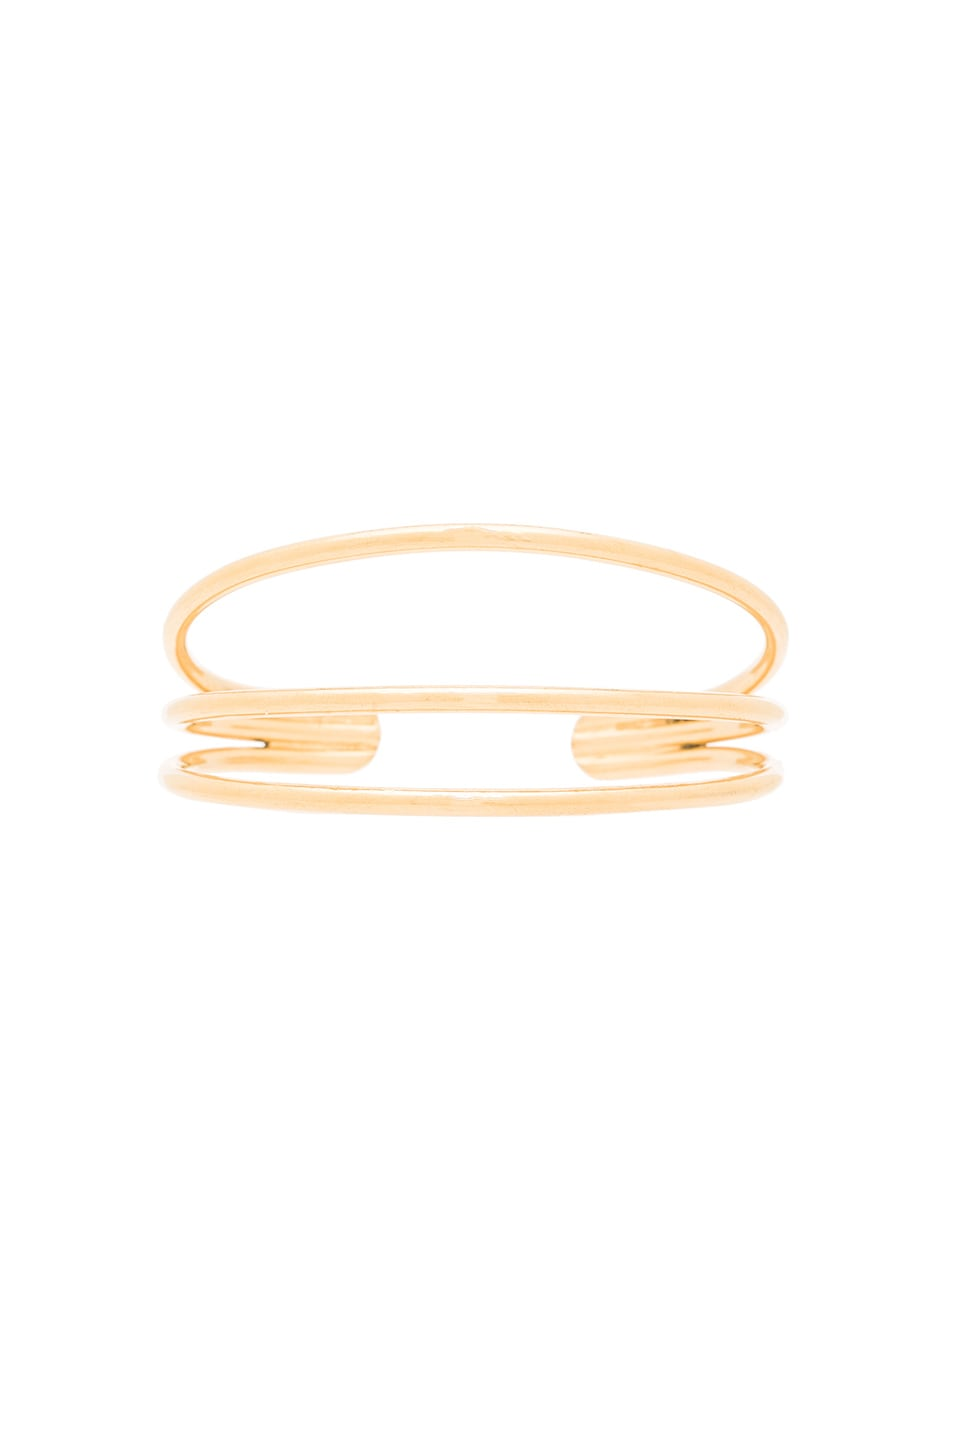 Vanessa Mooney Blondie Cuff Bracelet in Gold